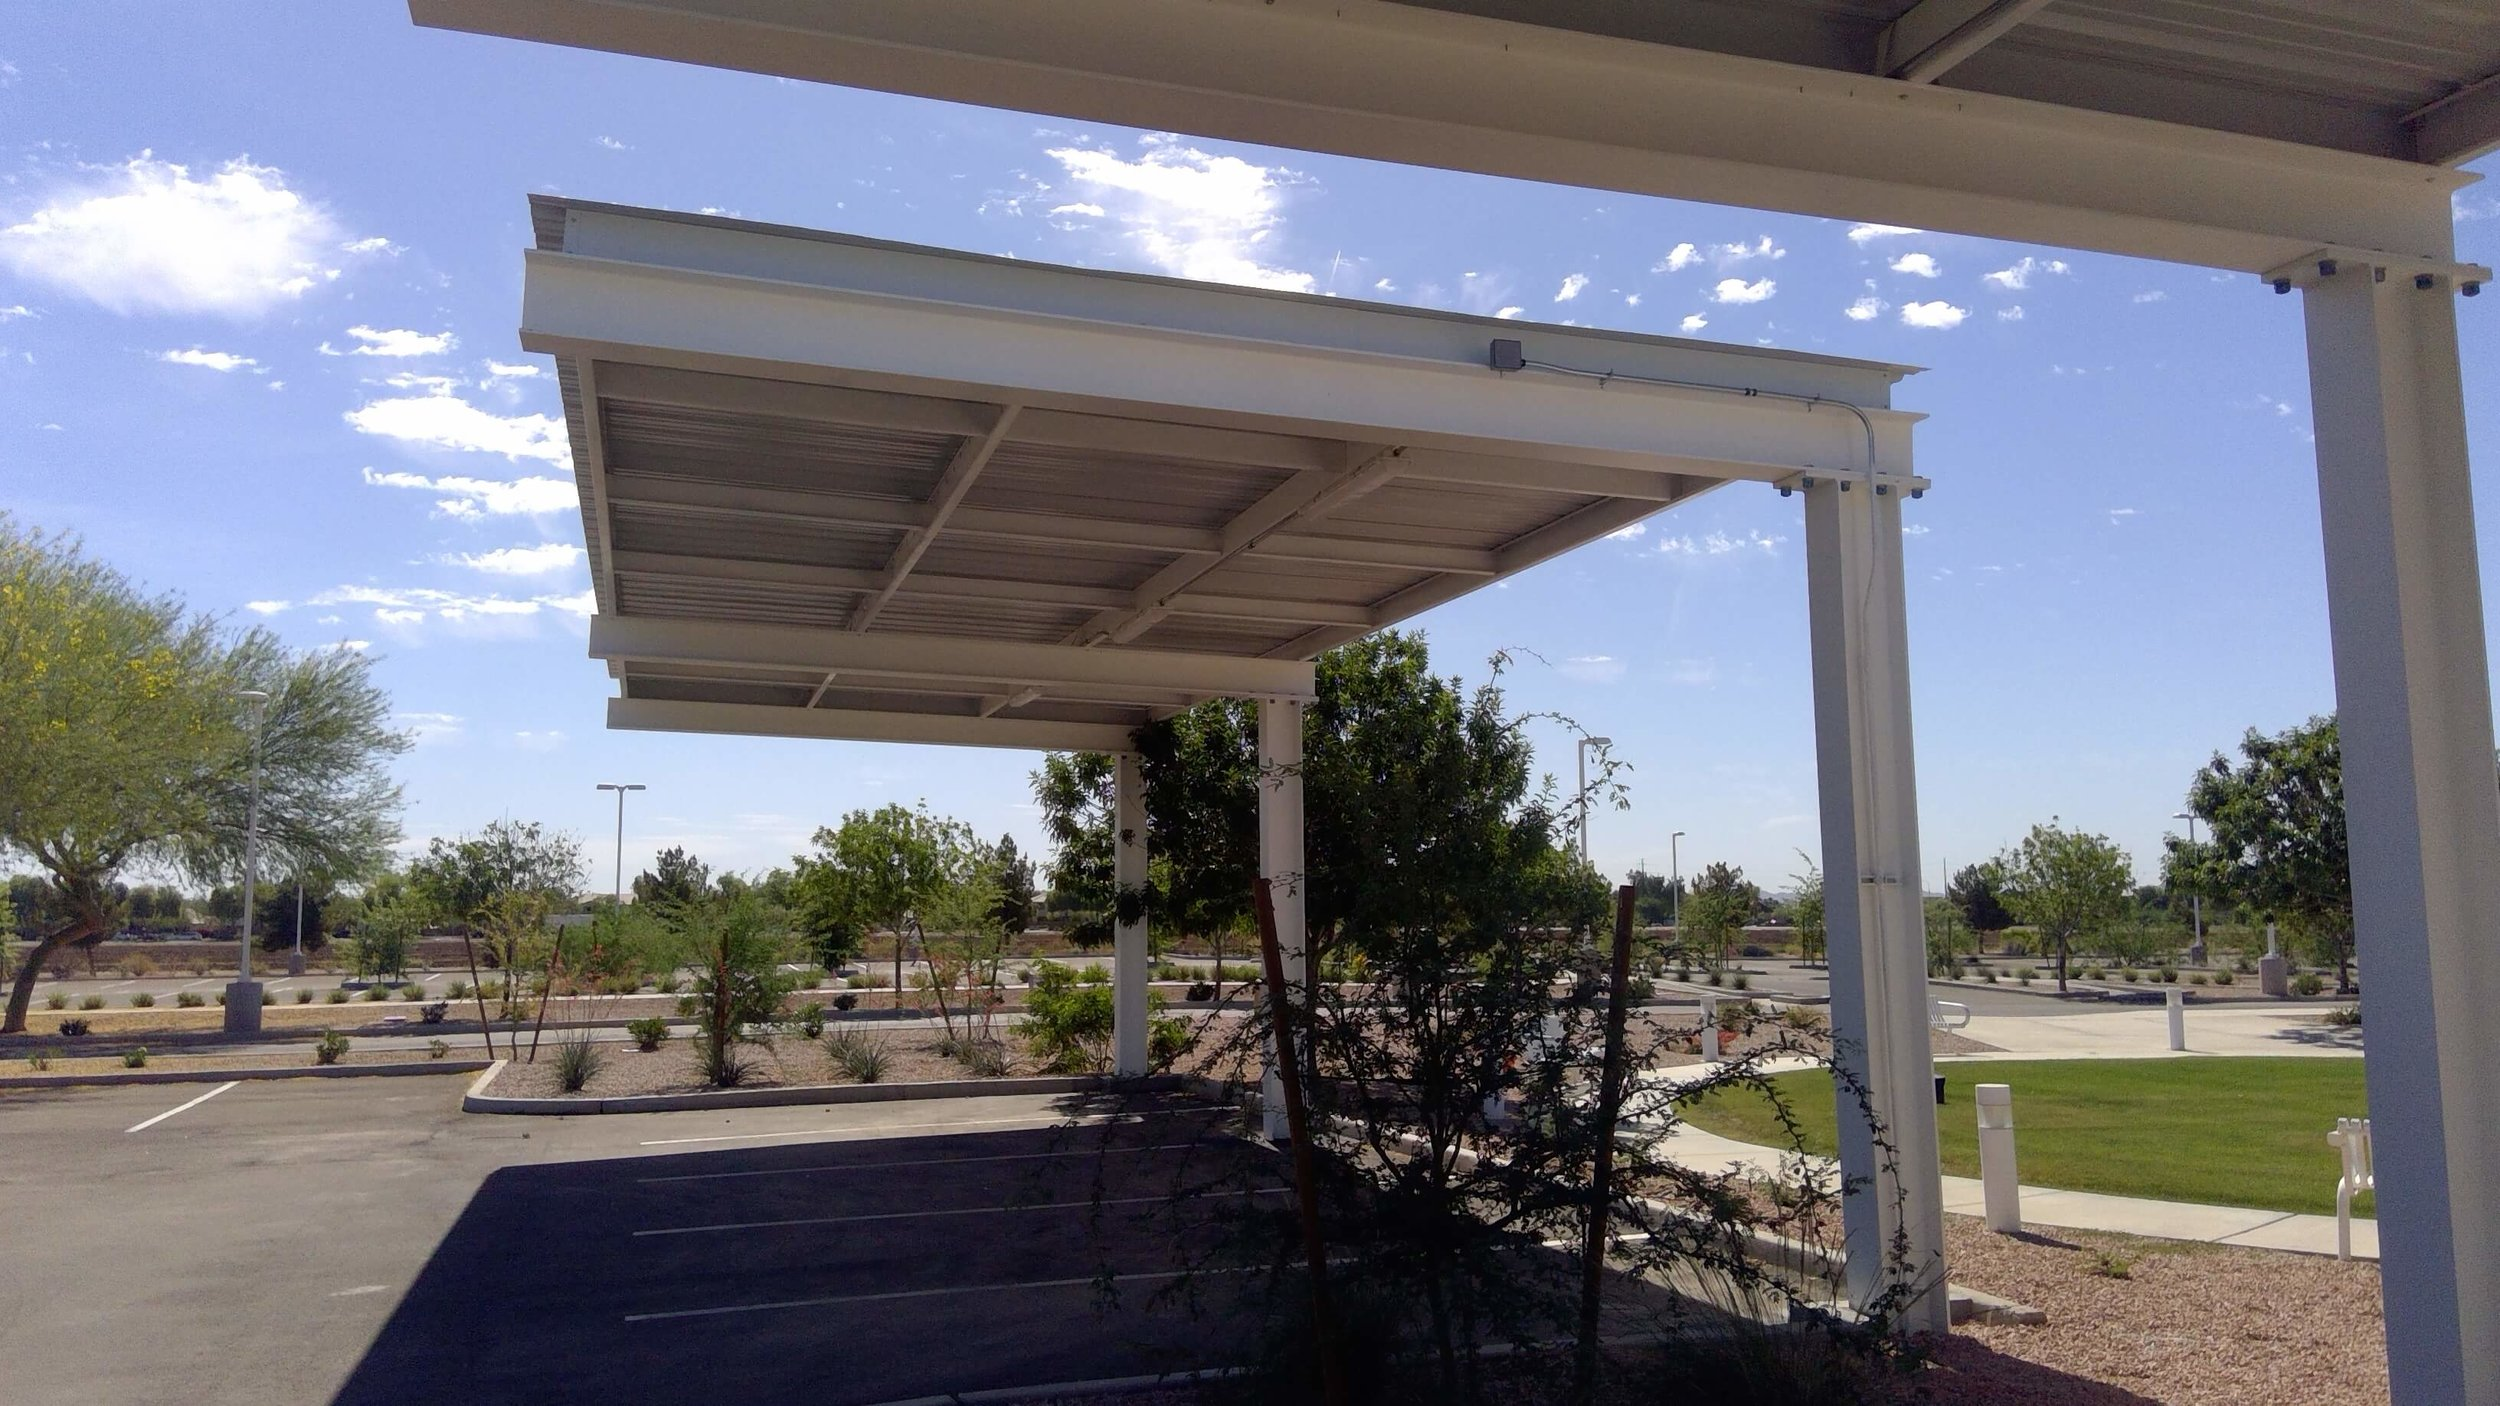 I Beam Covered Parking Canopy